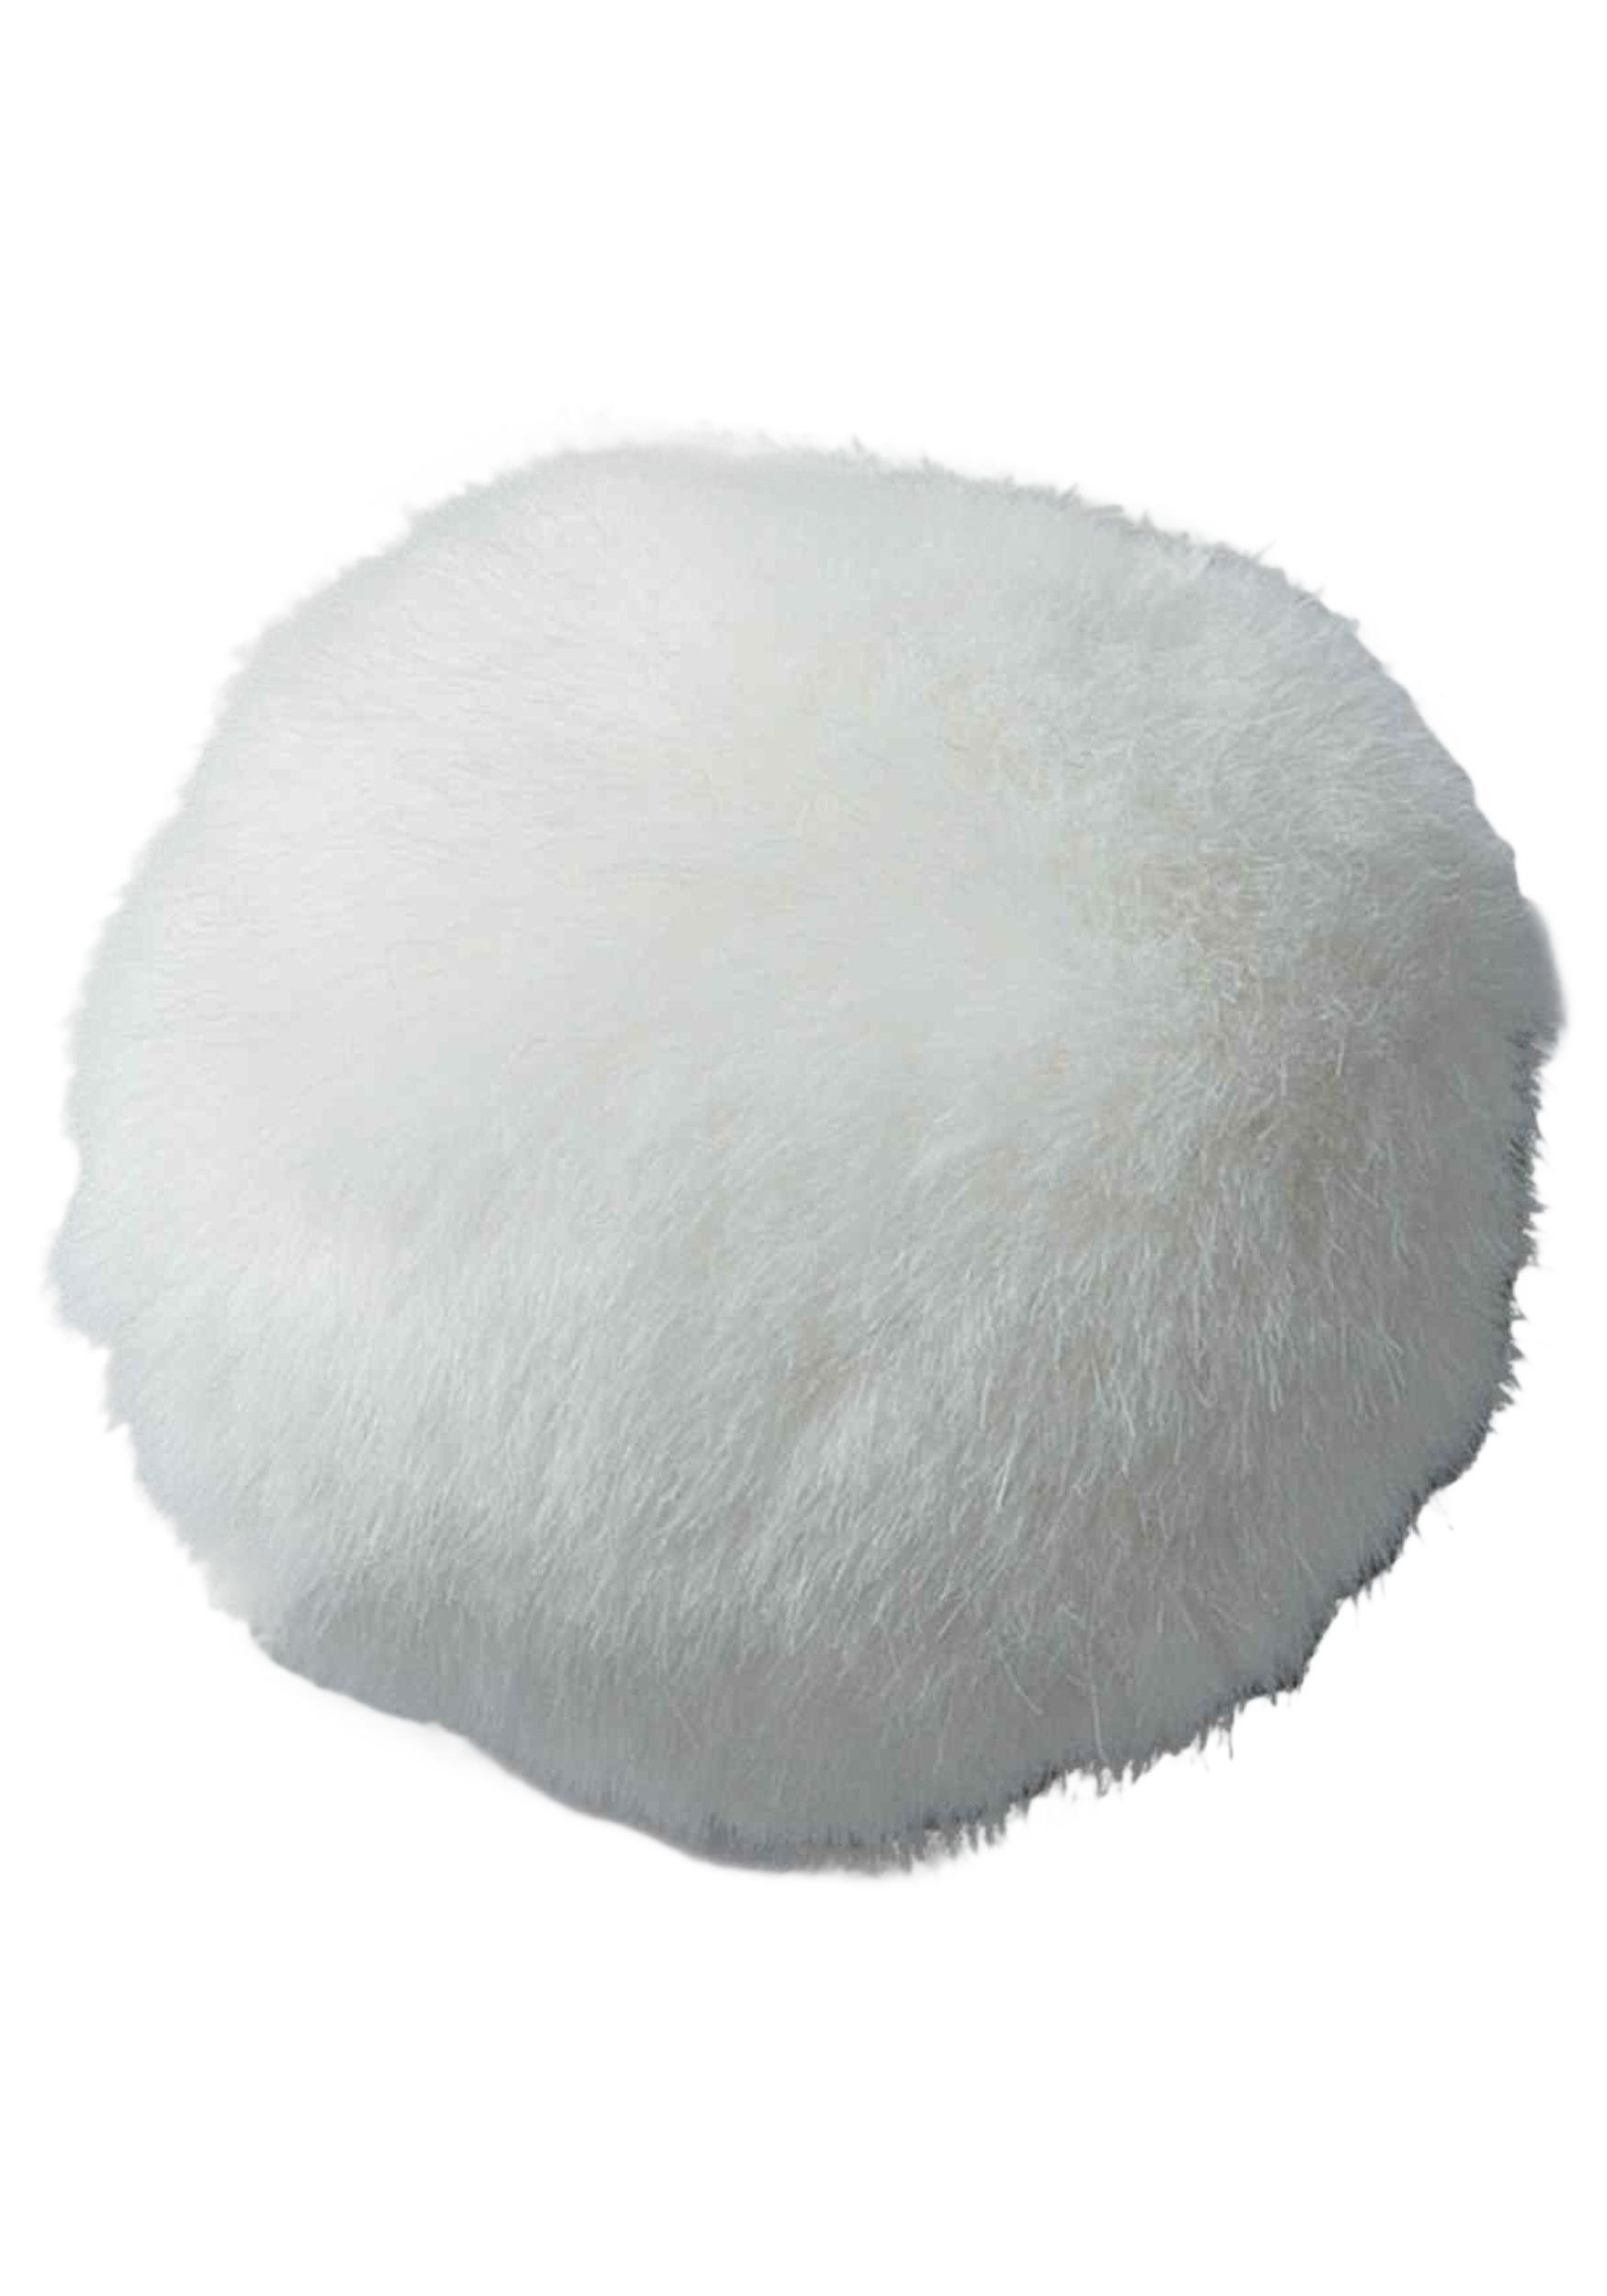 Fluffy White Bunny Tail Playboy Bunny Costume Accessories